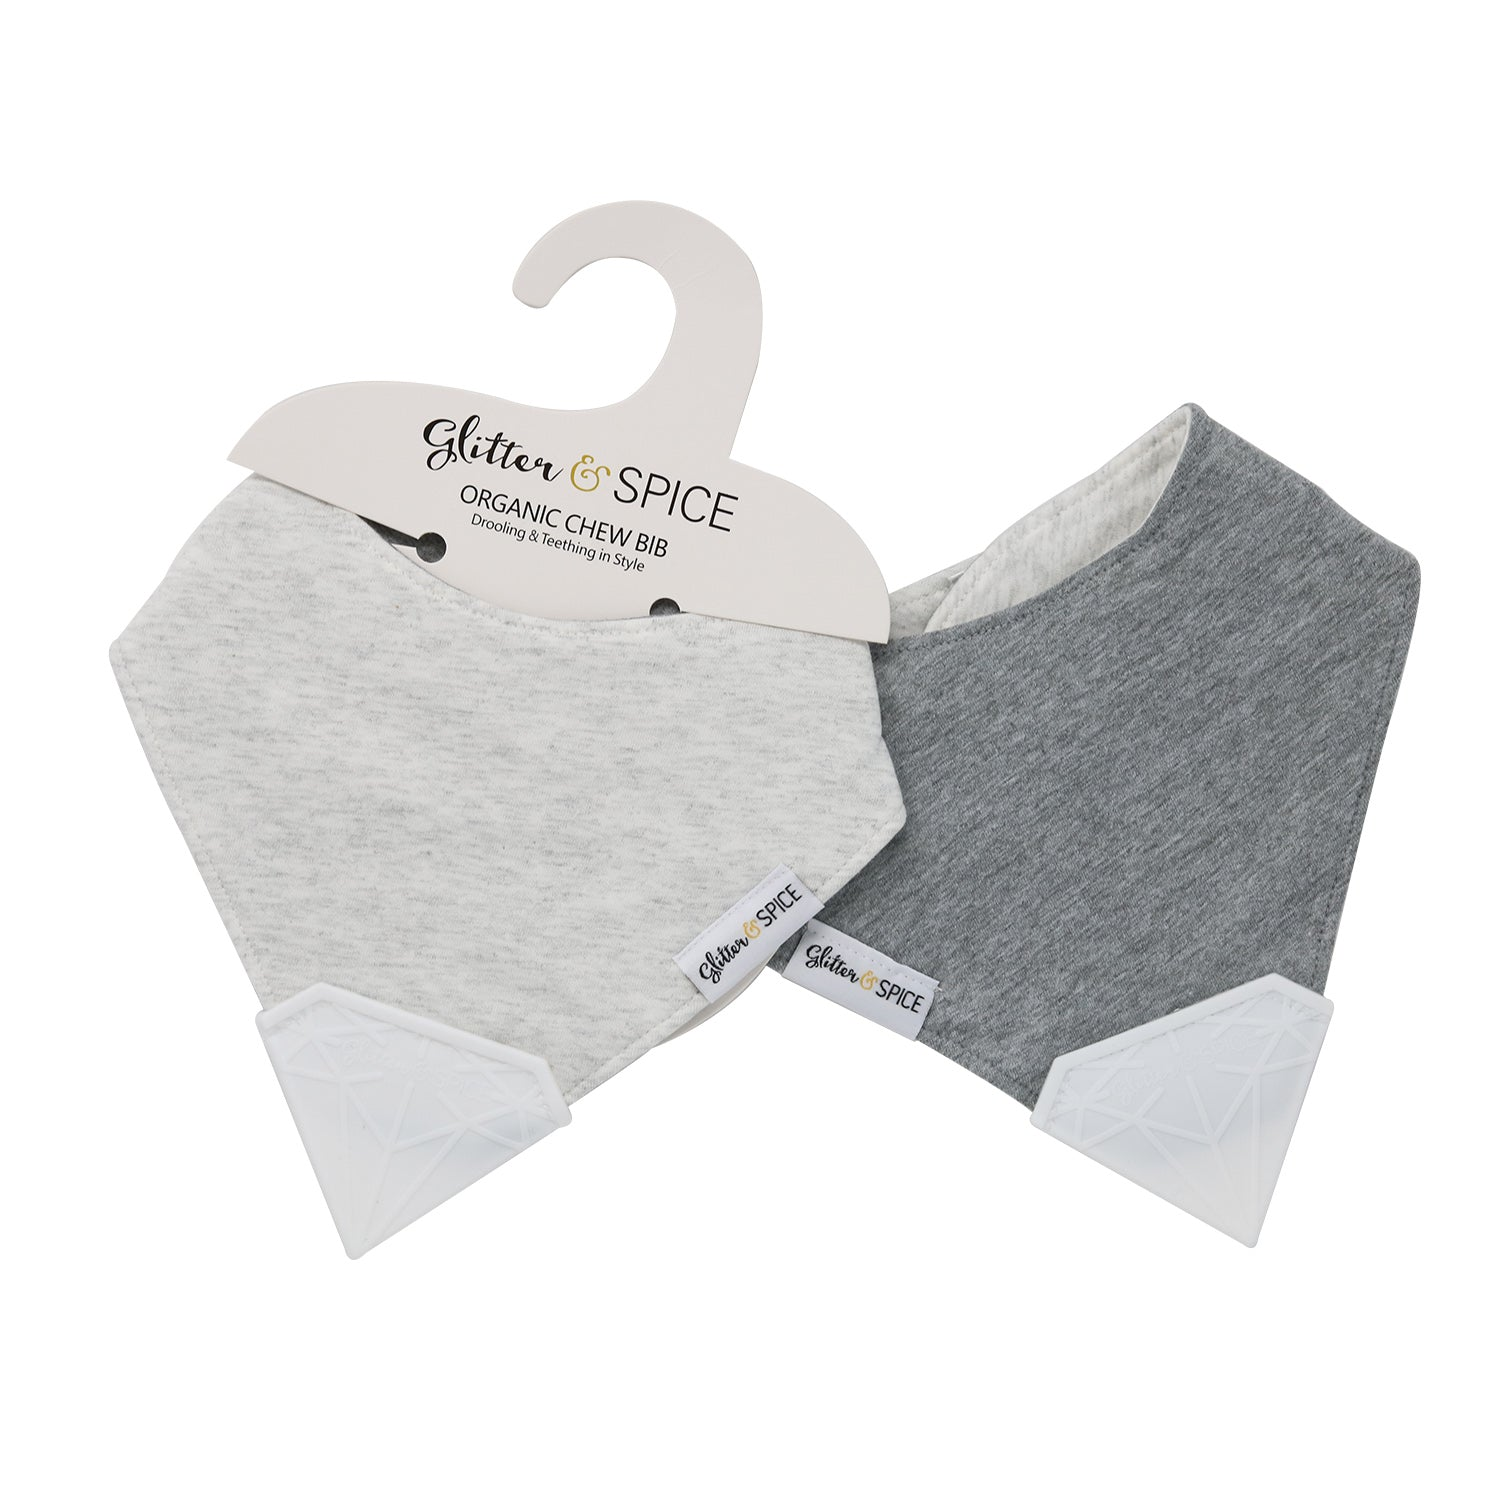 Double Sided Organic Chew Bib - Coal Harbour / Heather Gray - Glitter & Spice Canada